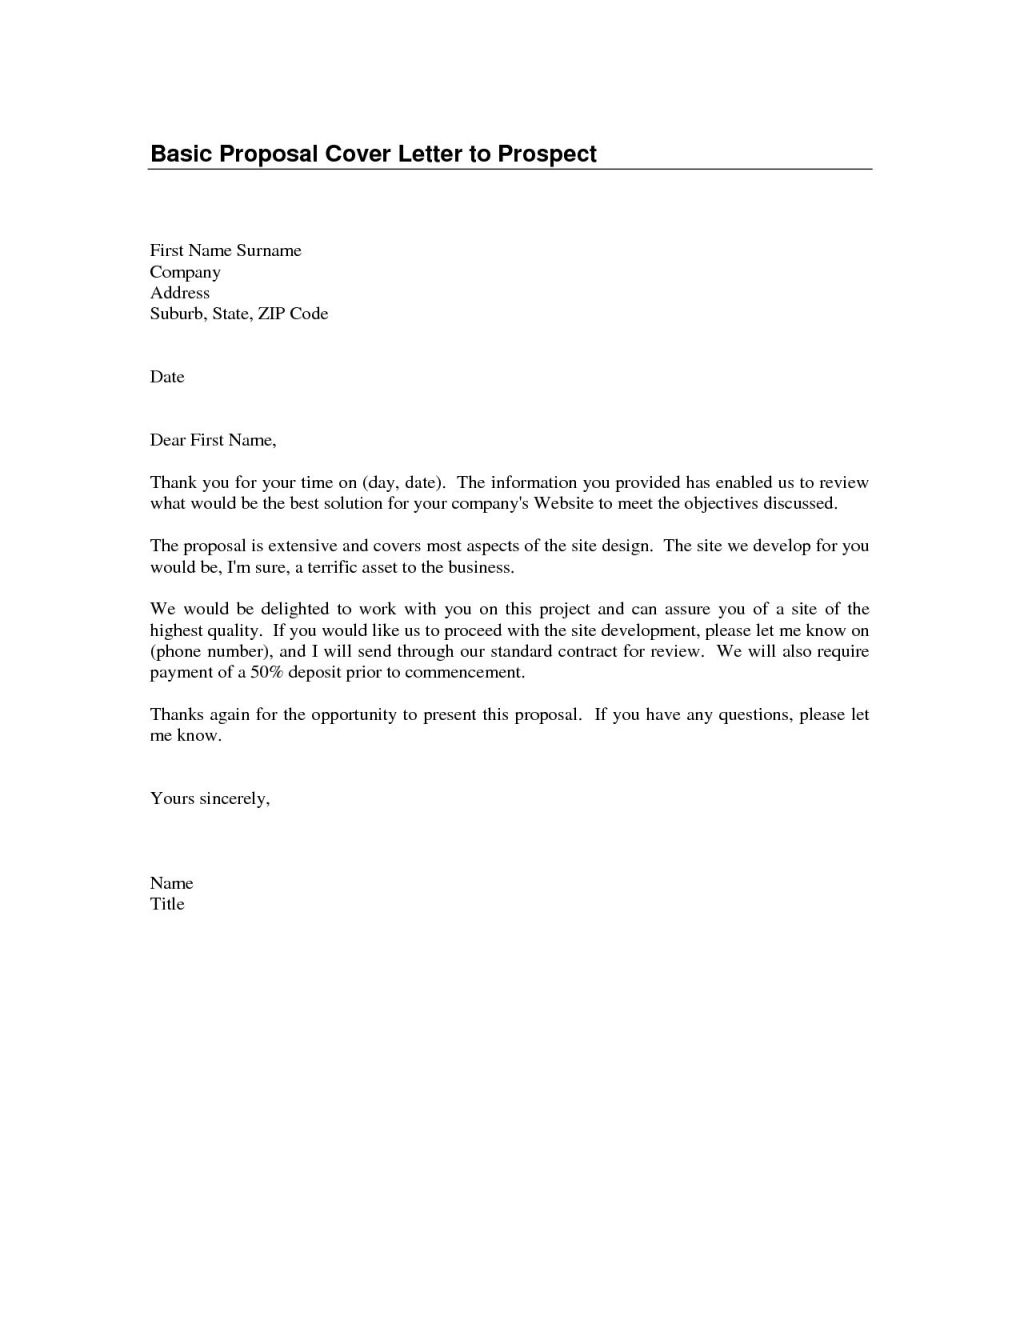 Car Sales Prospecting Letter Template - Wonderful Prospecting Letter Templates Lj15 – Documentaries for Change